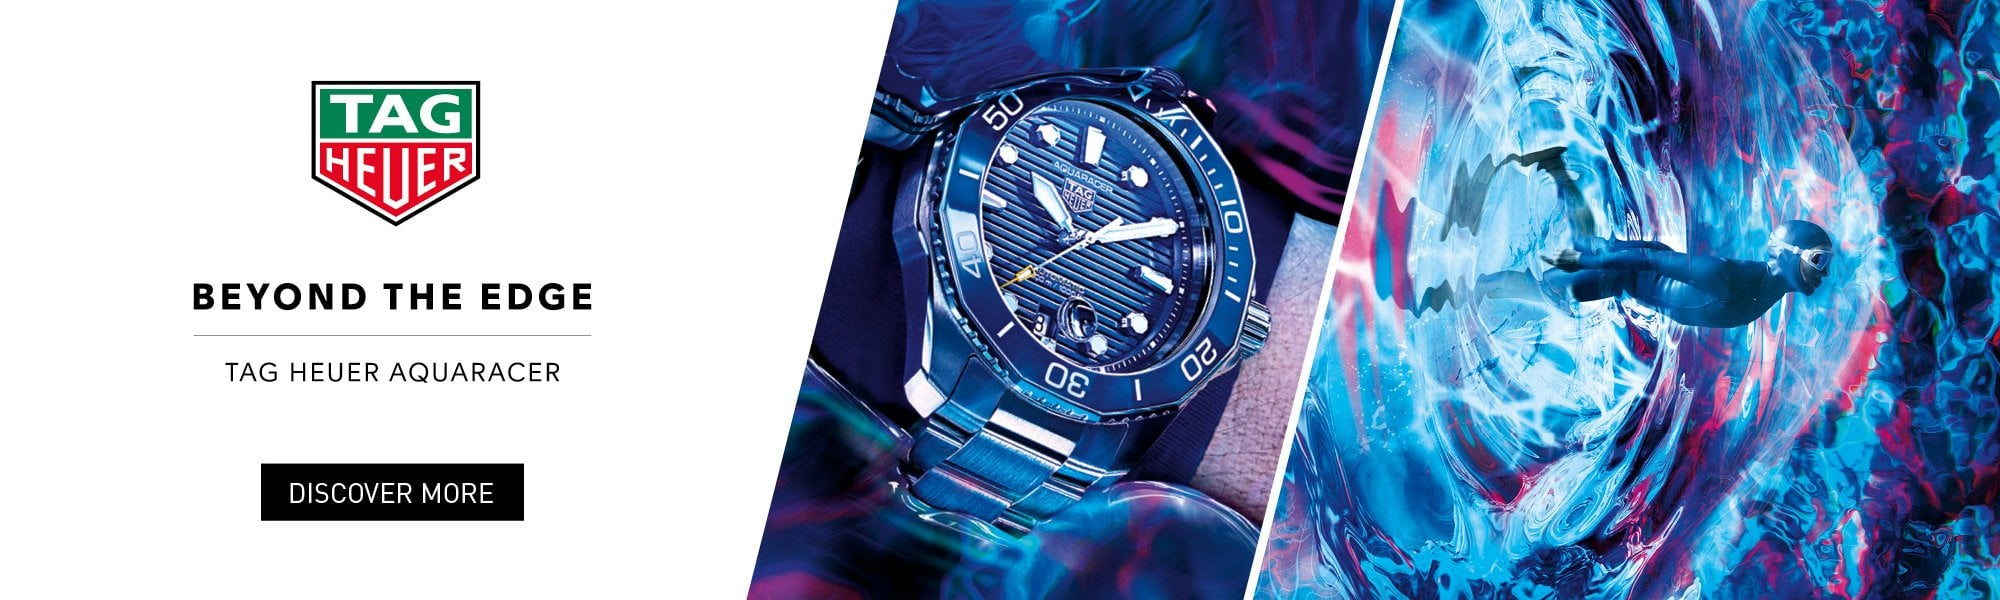 TAG Heuer Watches - Explore the Collection